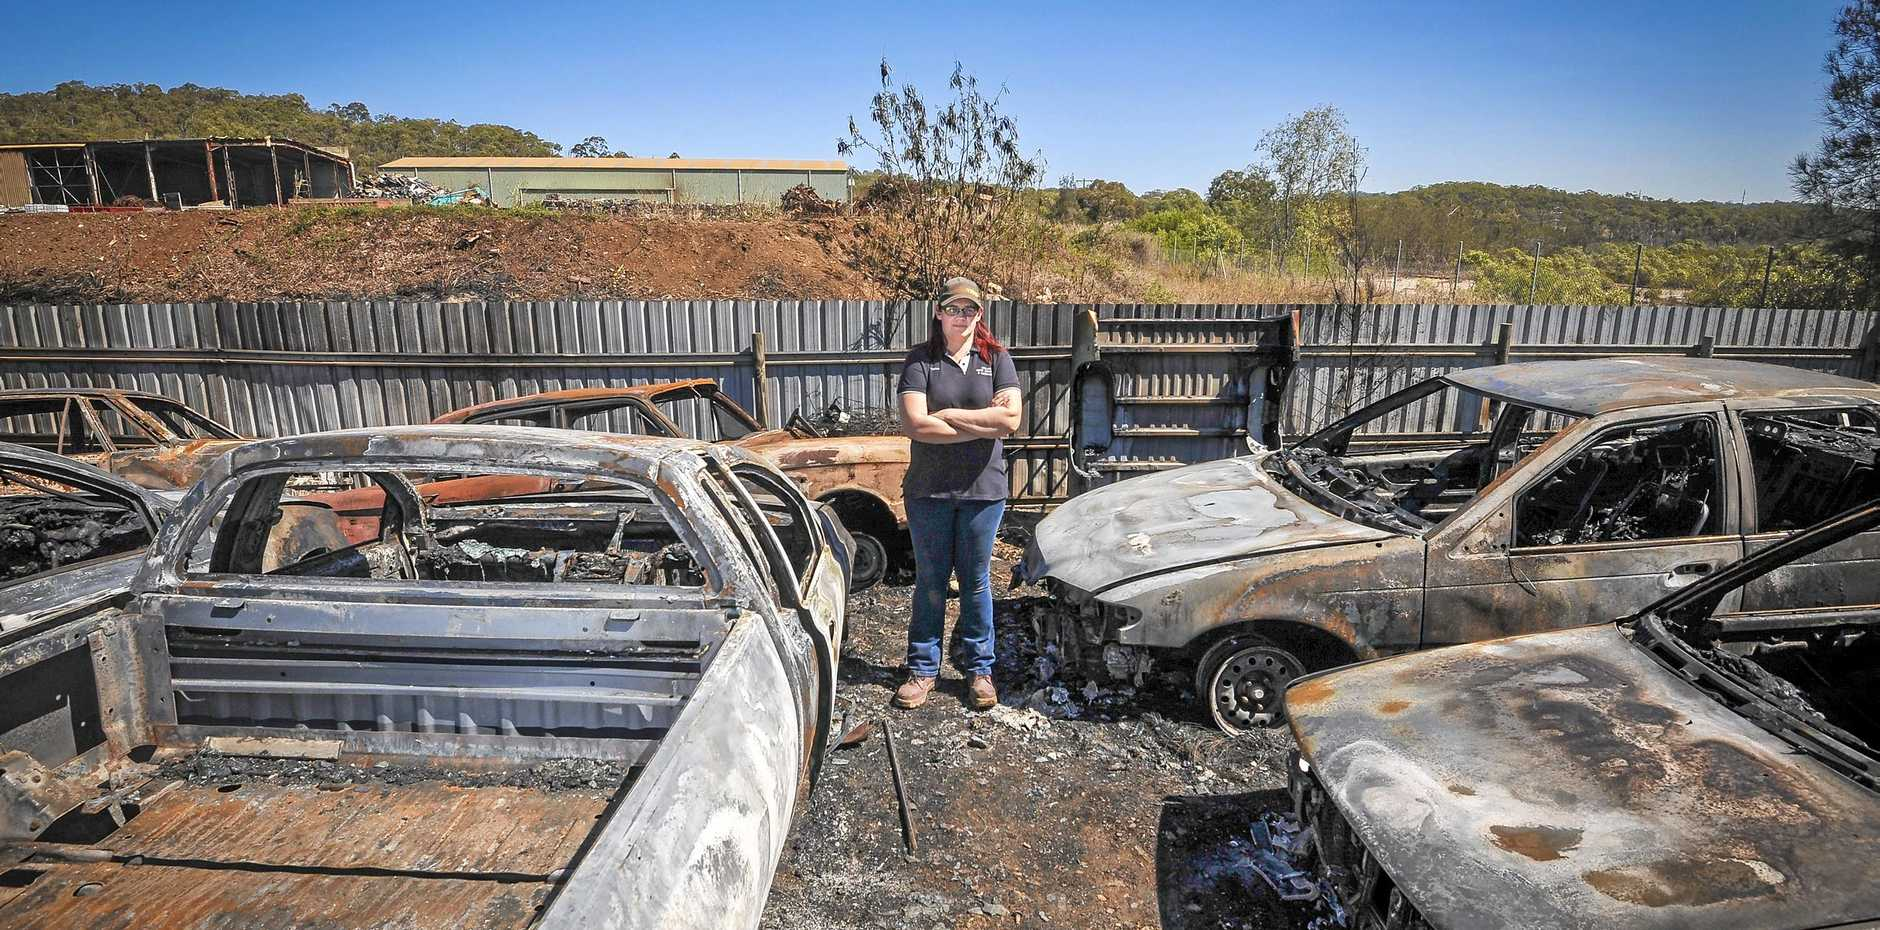 EXTENSIVE DAMAGE: Williams Auto Wreckers & Mechanical owner Tanya Williams said the loss of 14 cars in a fire has left a big dent on the business's stock. Tanya also lost her 1960s Ford Falcon in Tuesday's blaze.